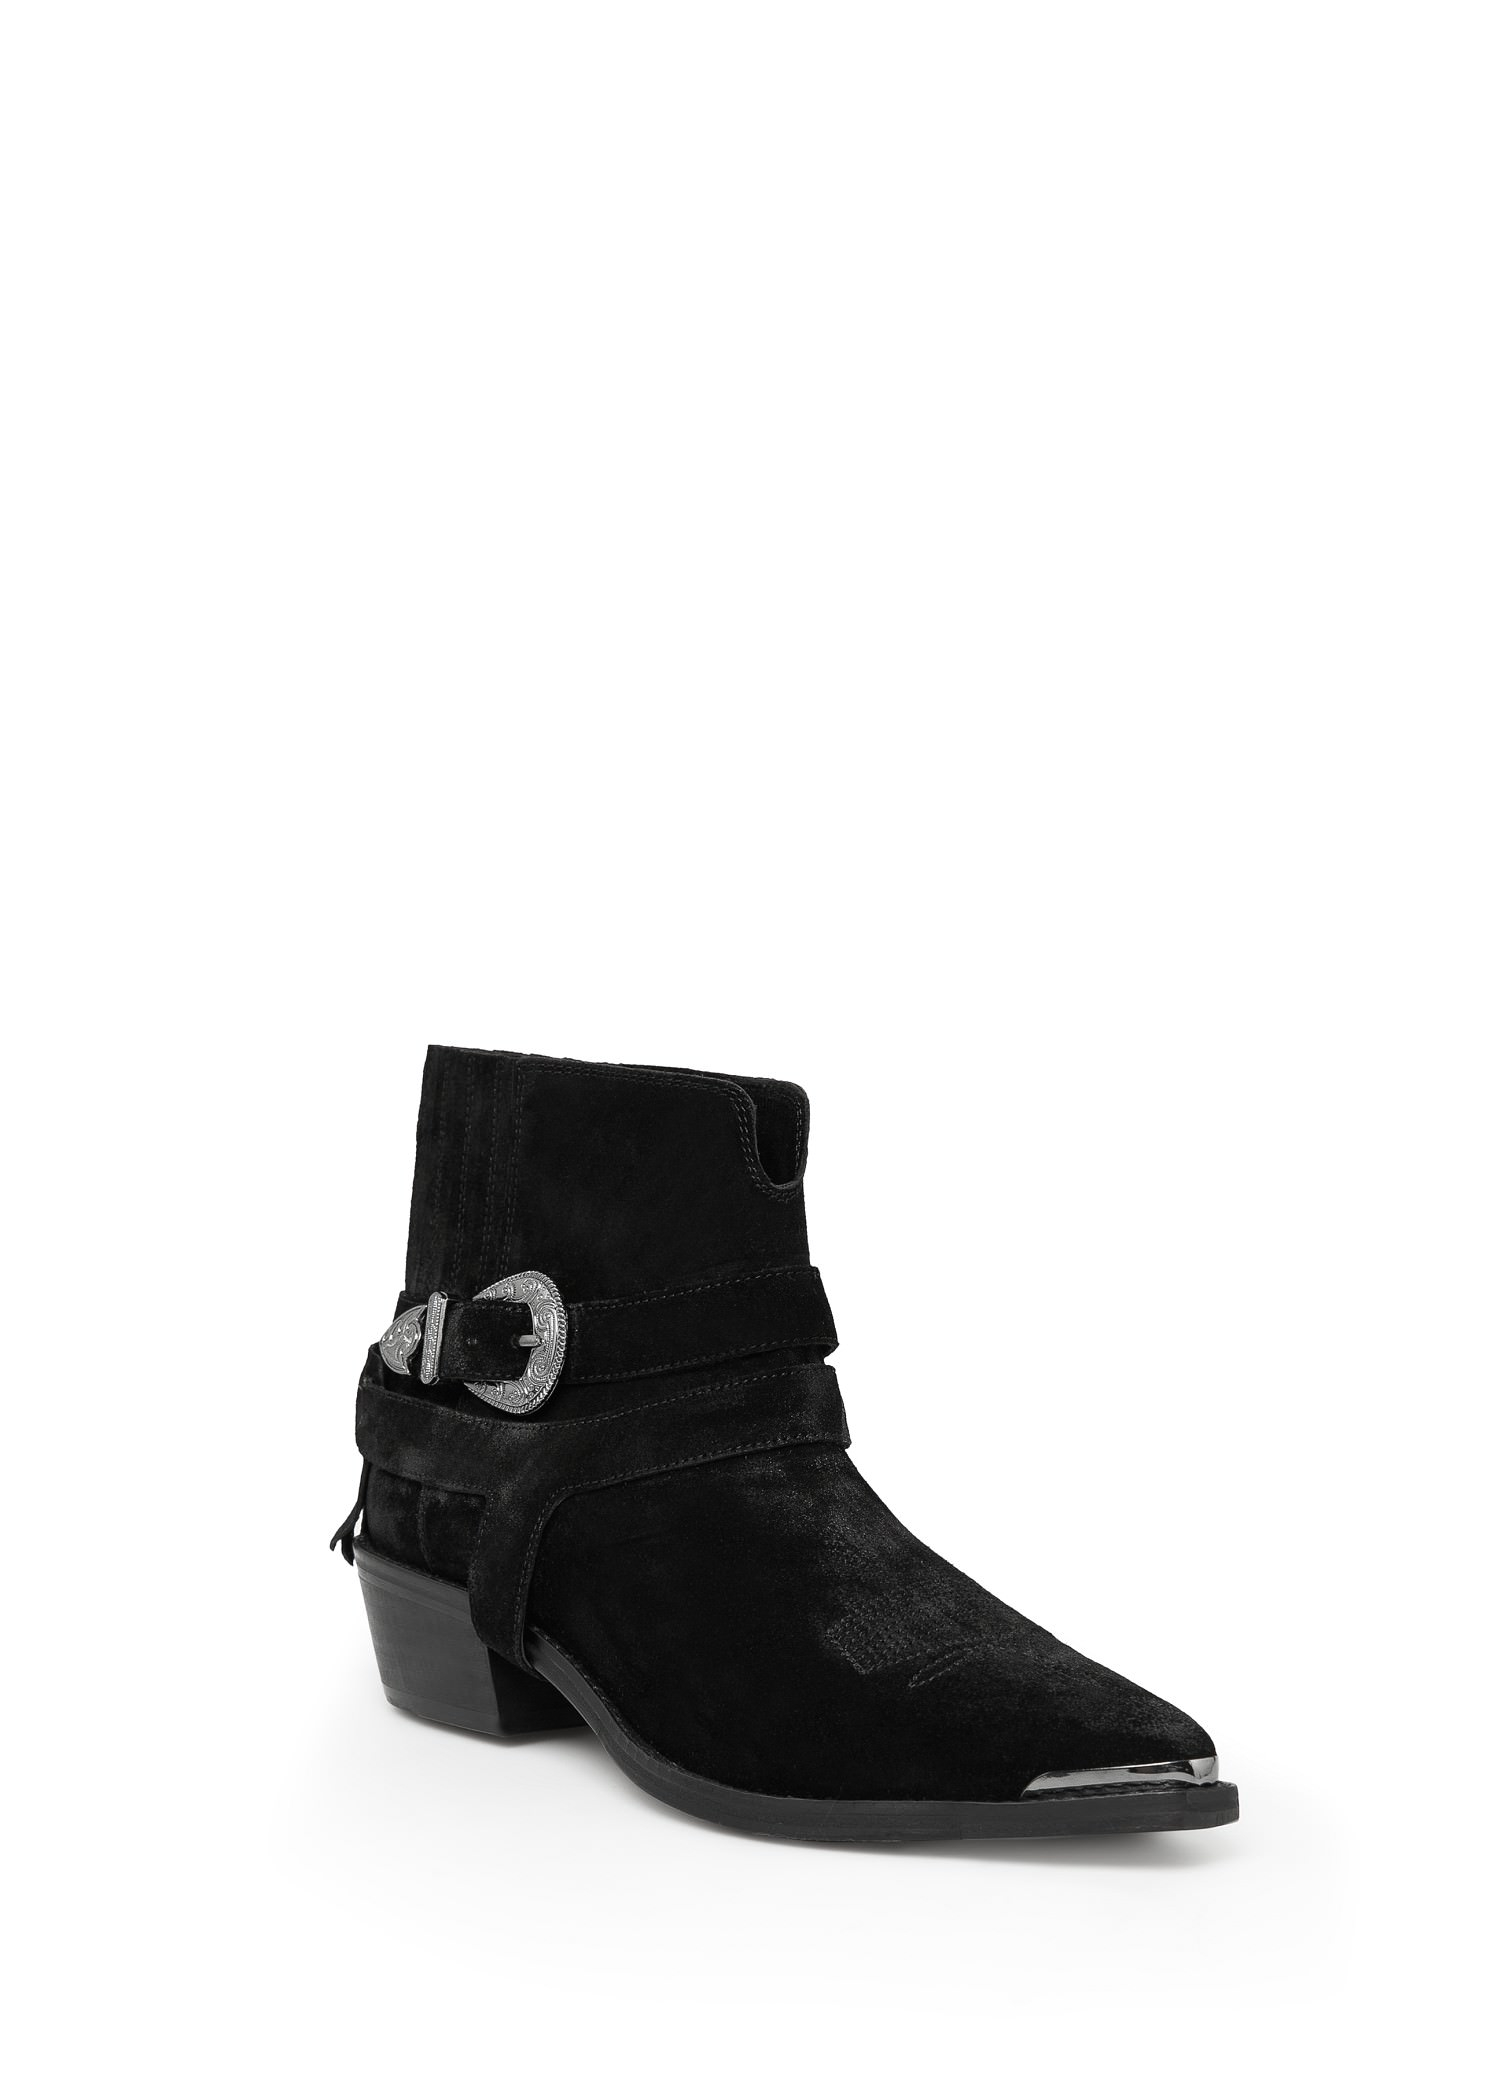 Mango Buckle Suede Ankle Boots in Black | Lyst